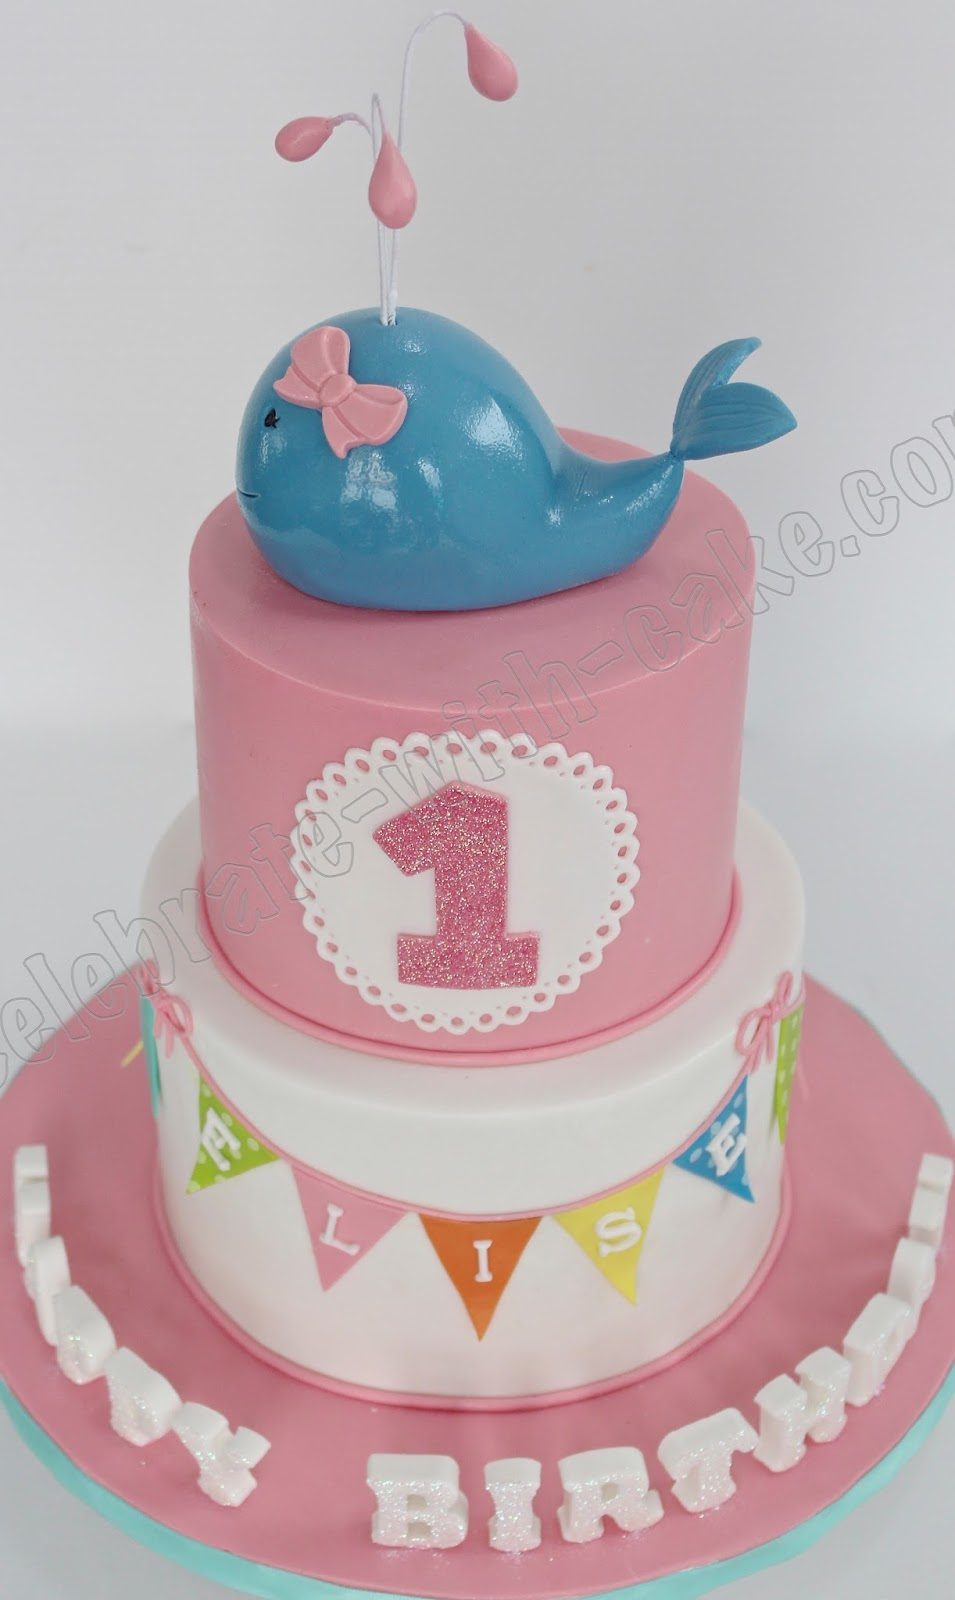 Birthday Cake Images For Email : Celebrate with Cake!: 1st Birthday Baby Whale Tier Cake